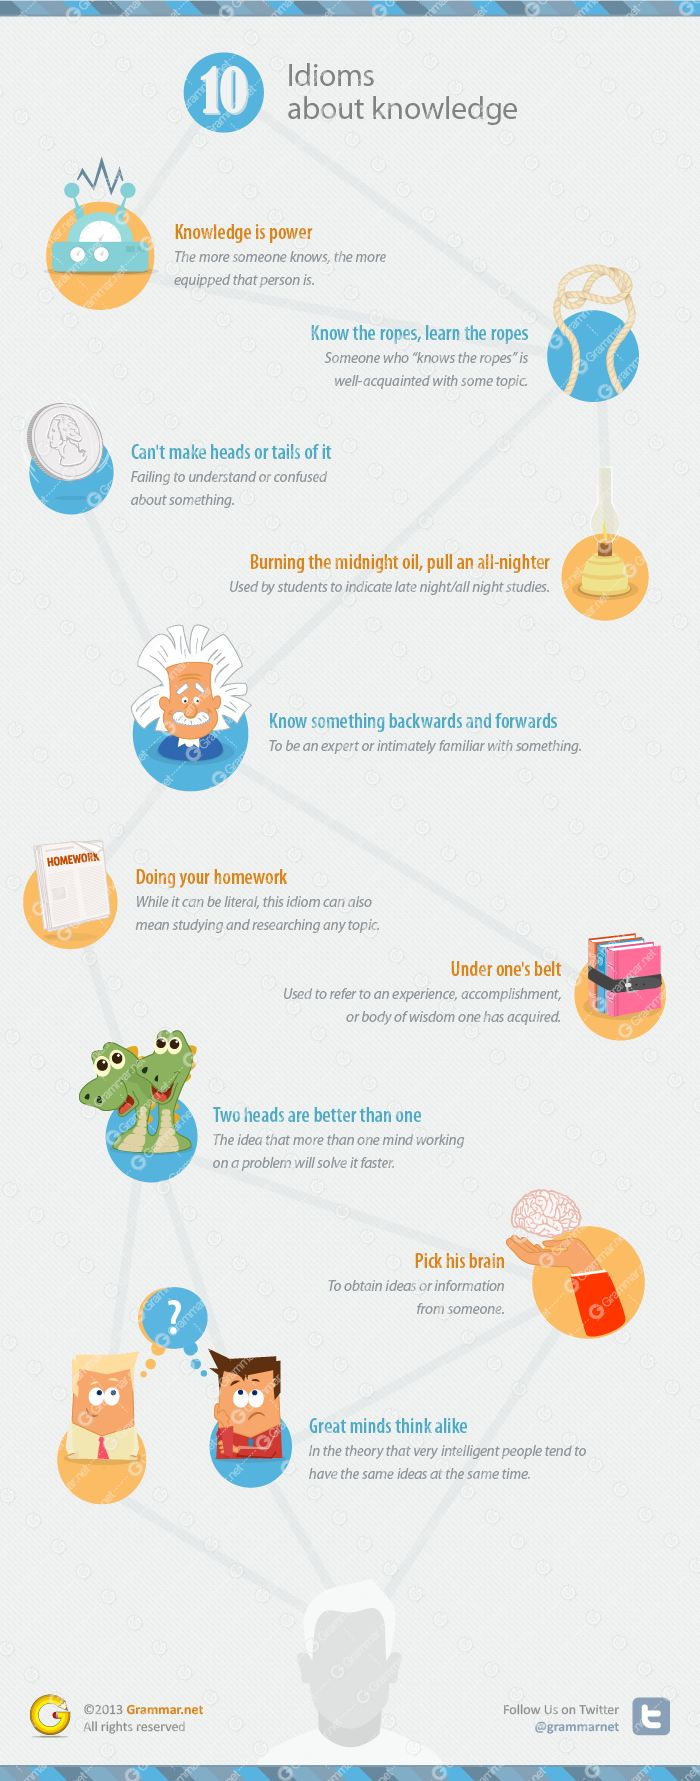 Modern culture cherishes wisdom, and English has plenty of idioms to reflect this. The infographic displays many common knowledge idioms, and the article lists examples of idioms in use.